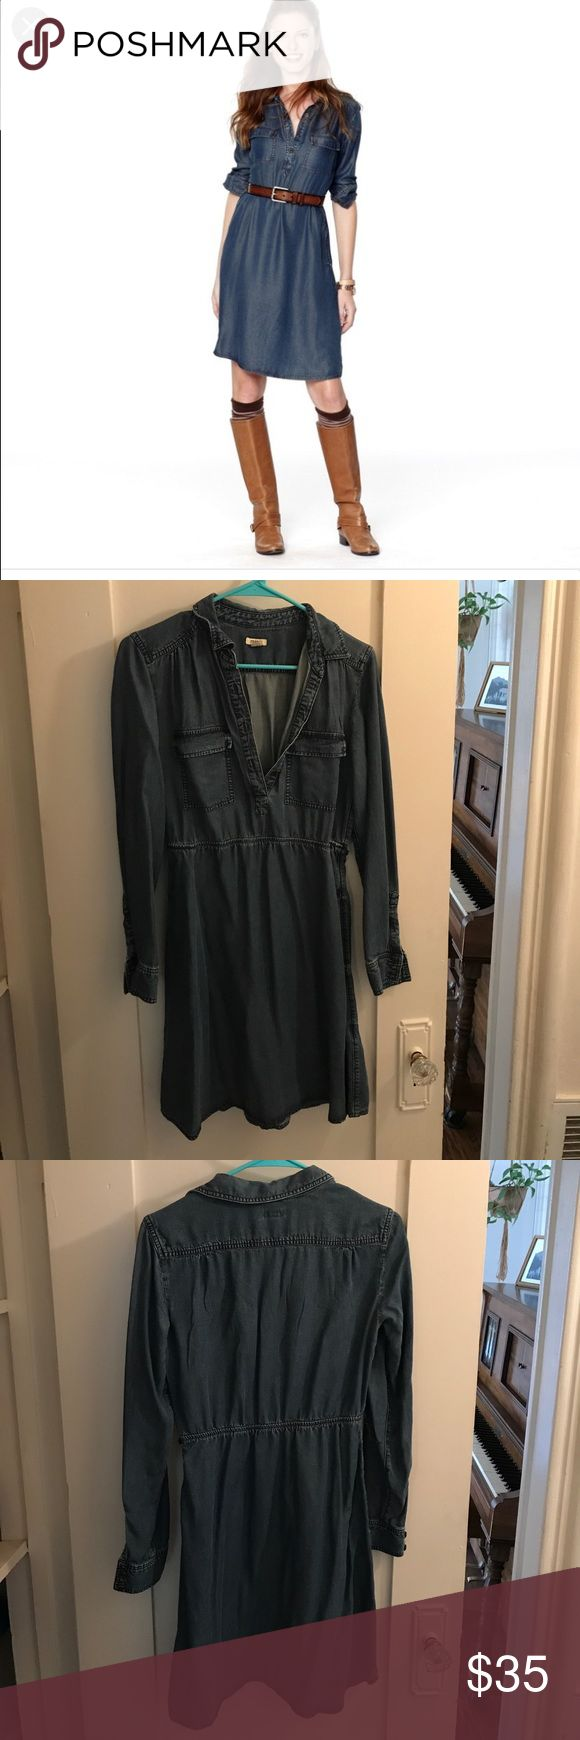 Fossil long-sleeves denim dress Fossil long-sleeves denim dress with pockets. Great condition. Fossil Dresses Mini